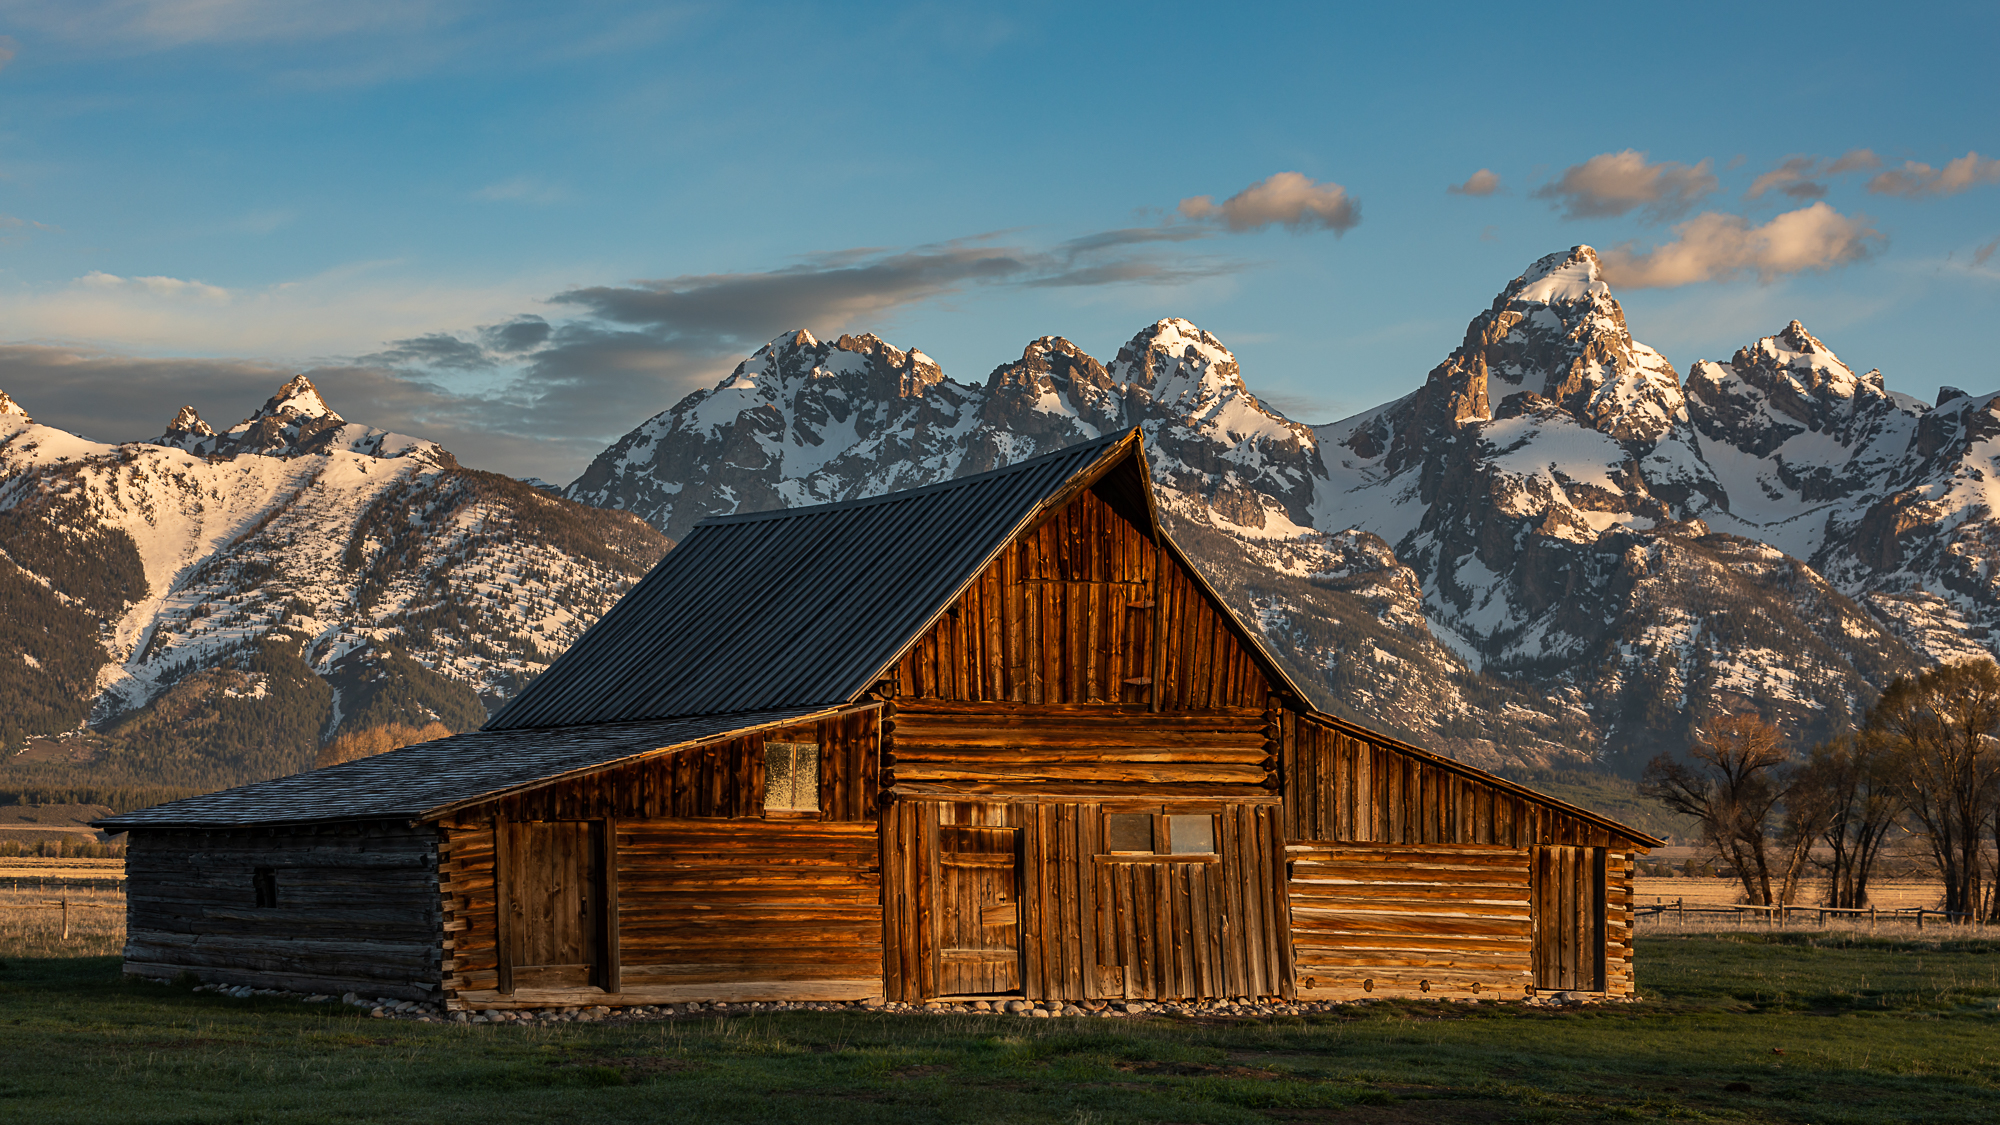 The other Moulton Barn with the Tetons in the background.